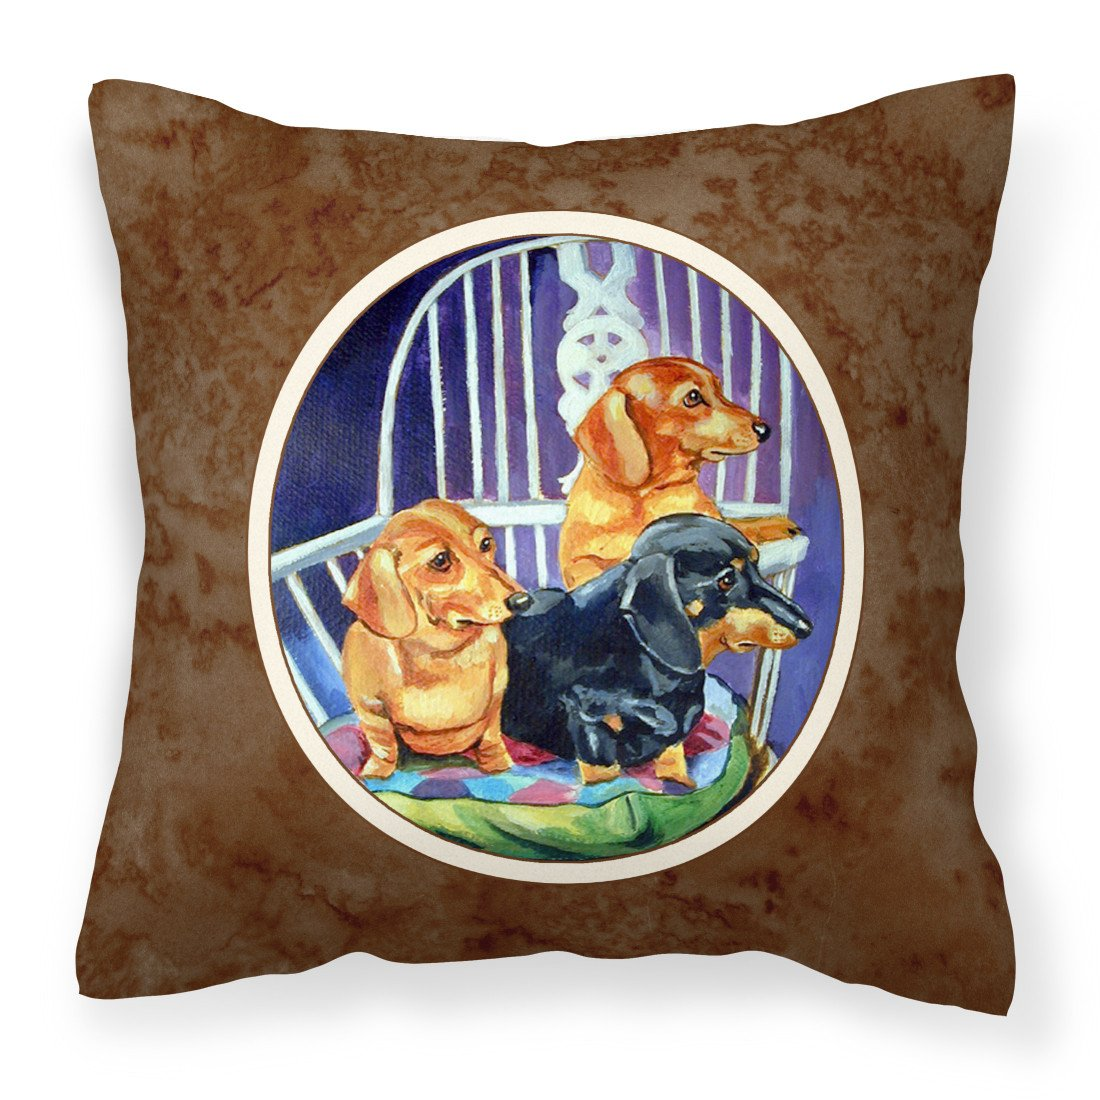 Buy this Dachshund Two Red and a Black and Tan Fabric Decorative Pillow 7025PW1414